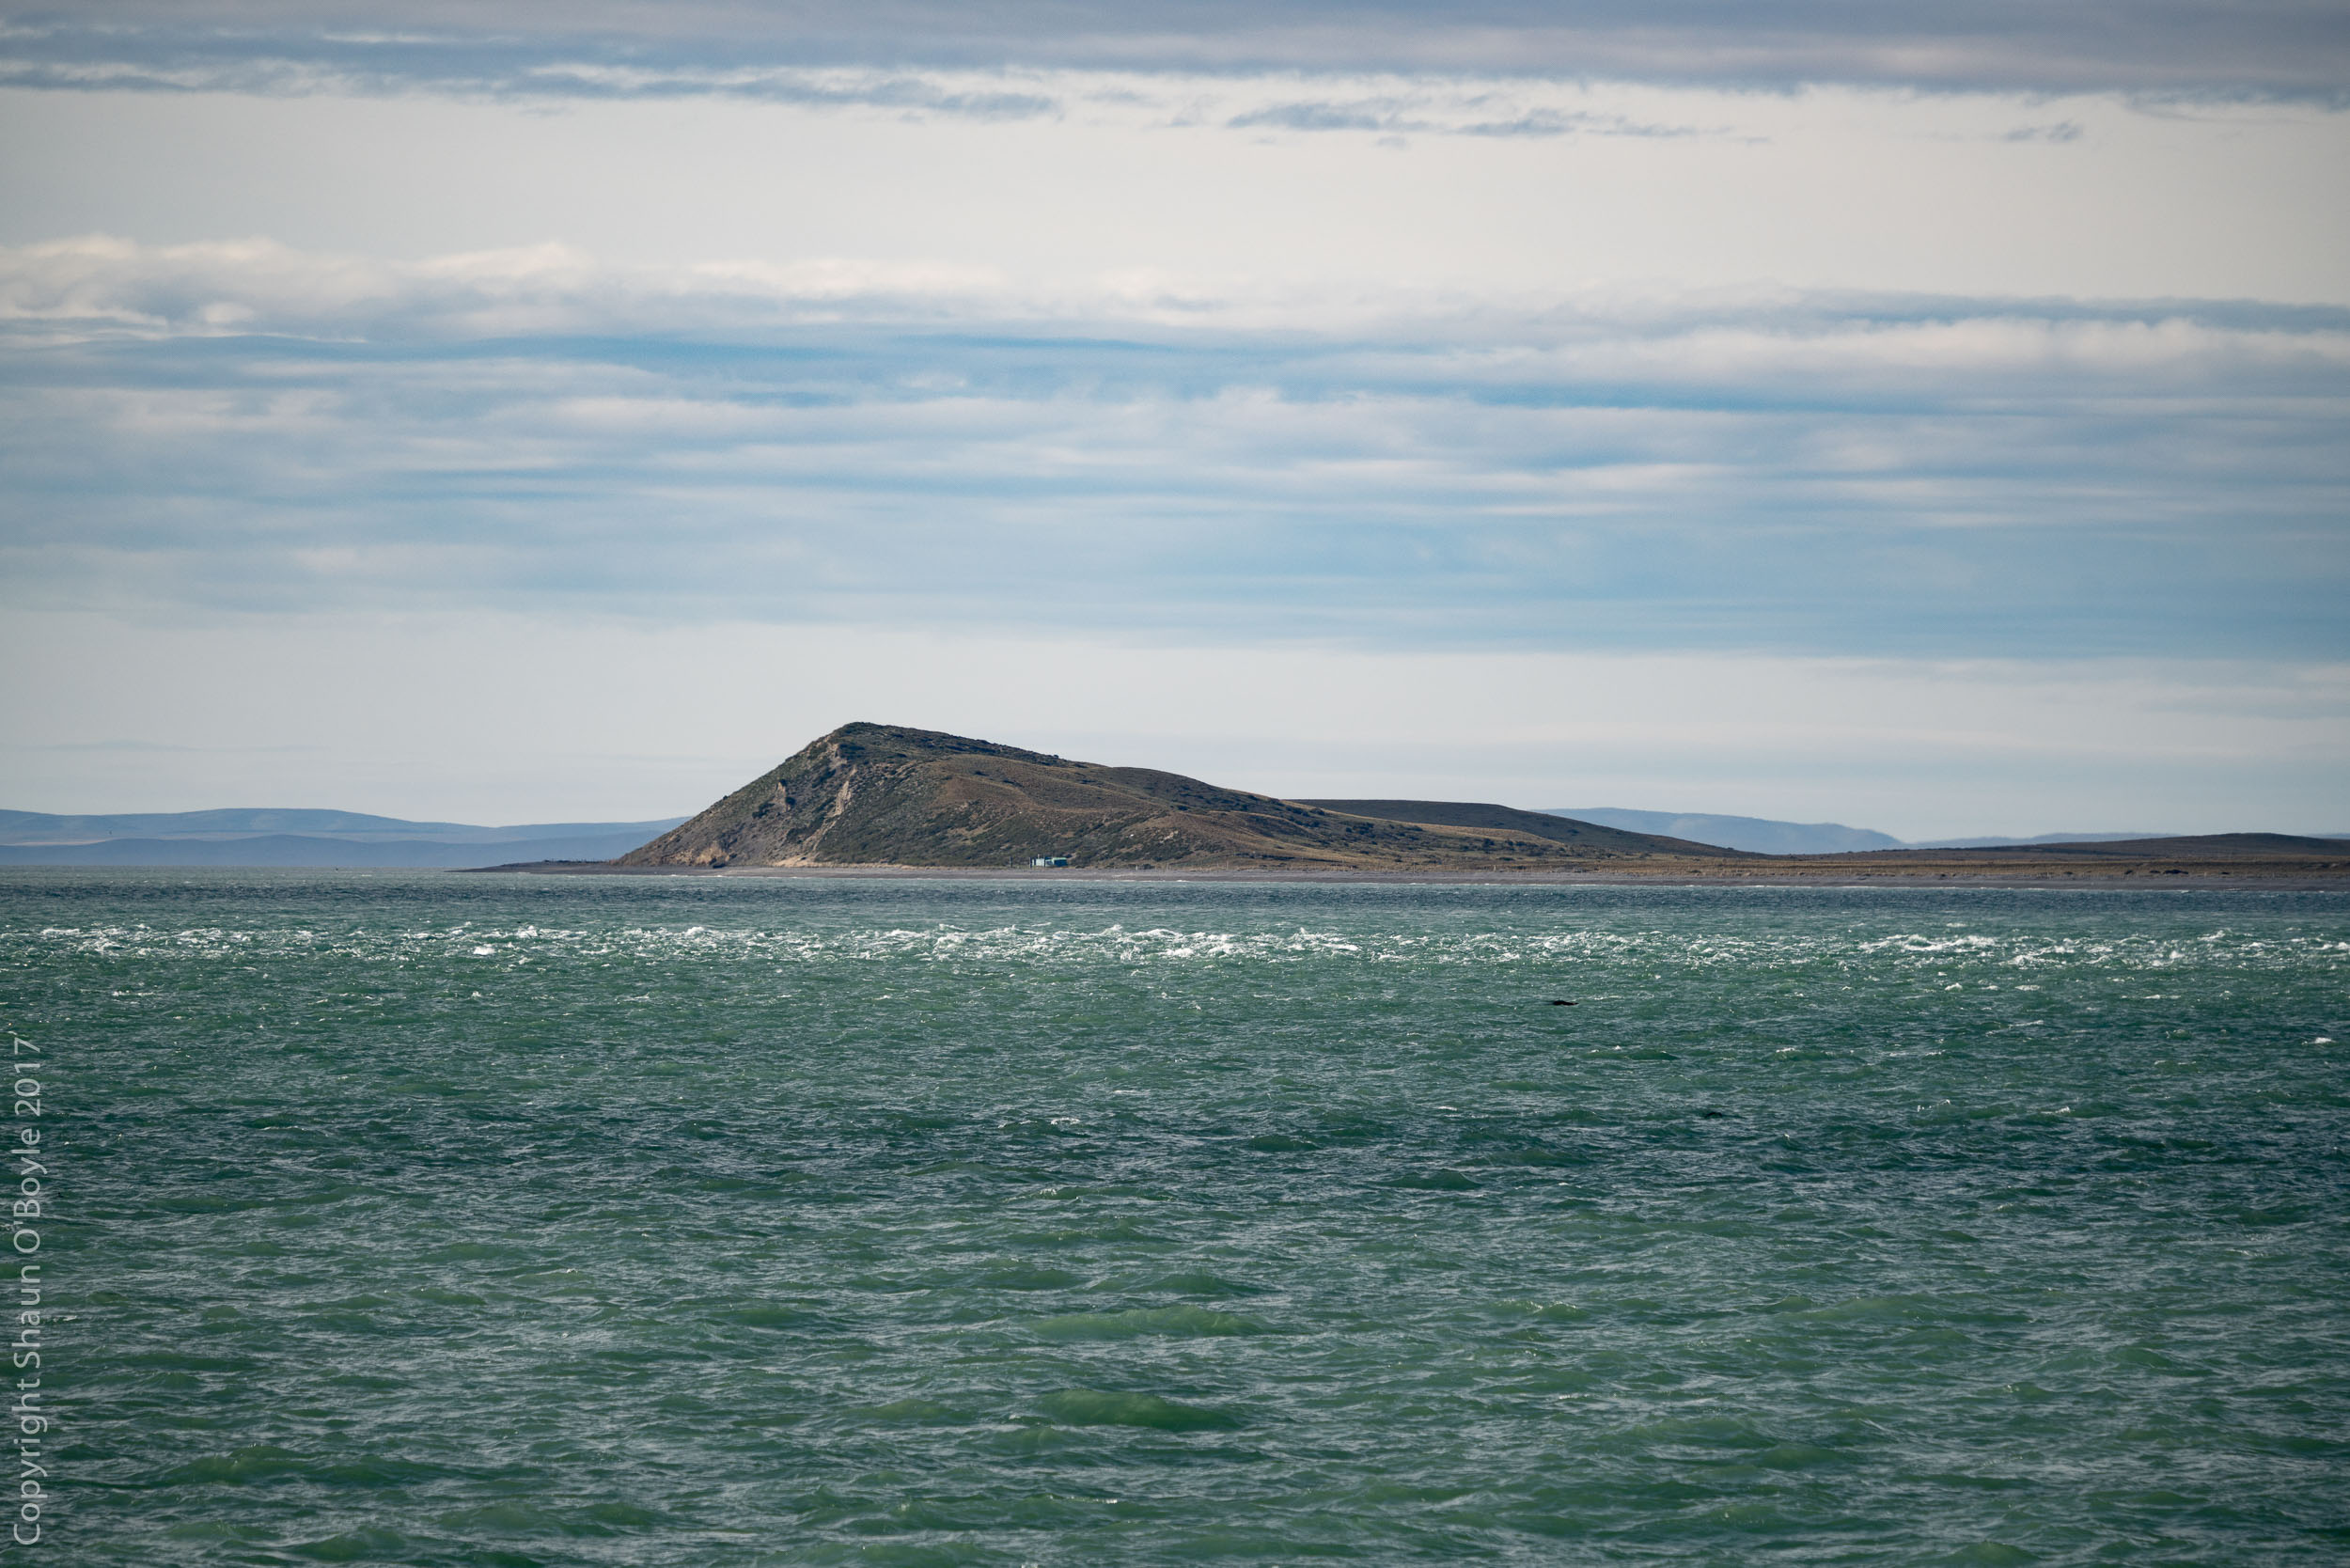 Exiting the Straits of Magellan